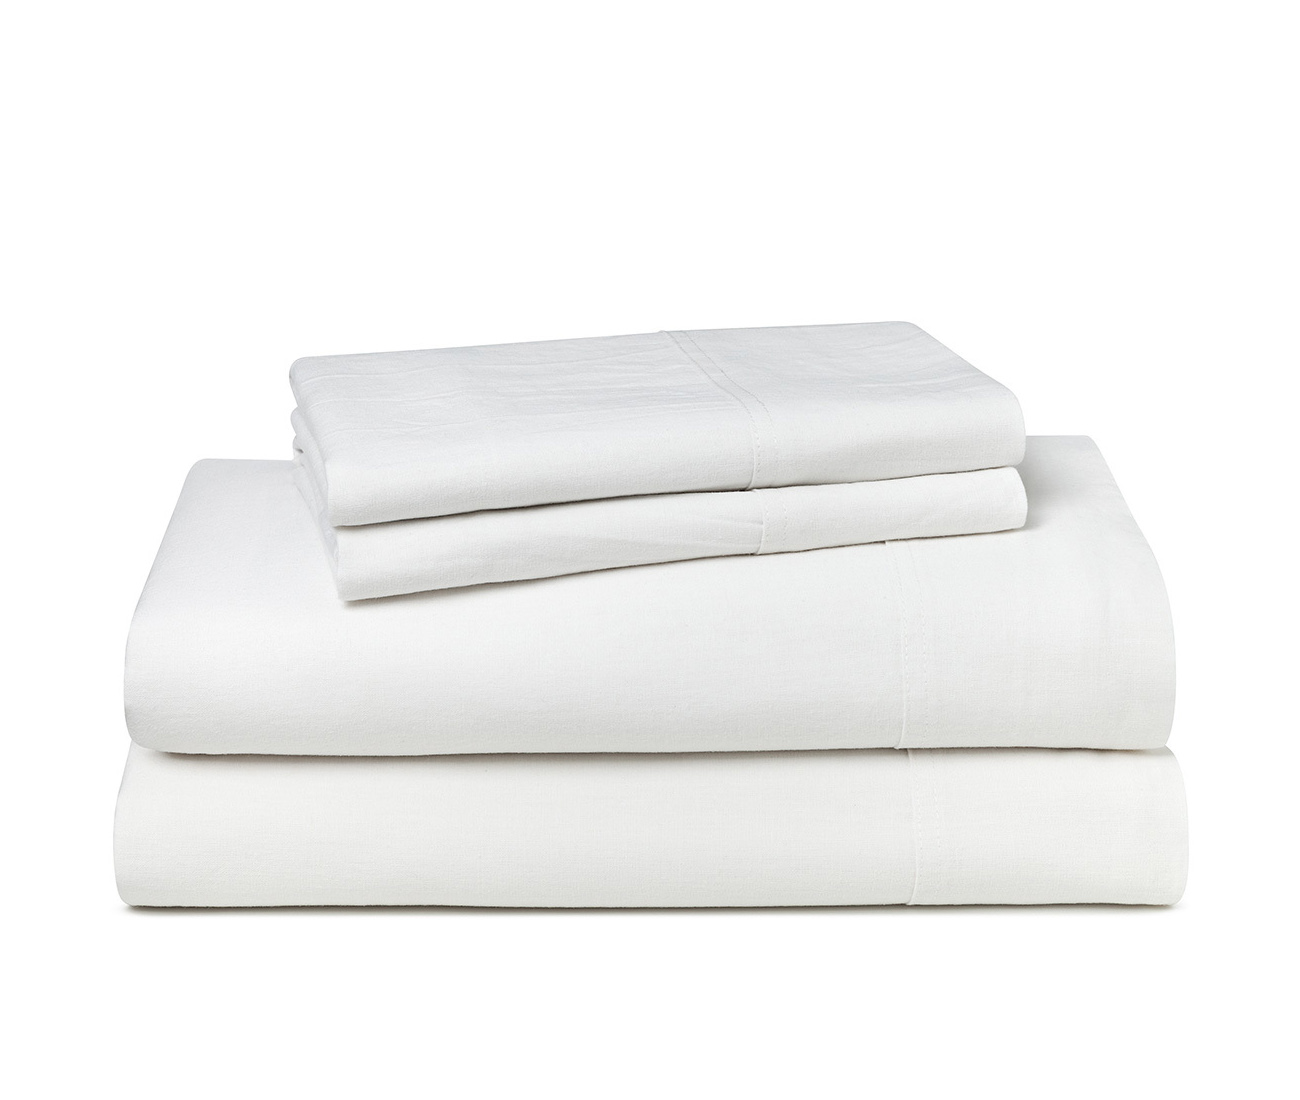 _sogno_sheet_sets_carrara_white__26099.1478755854.1280.1280 copy.jpg